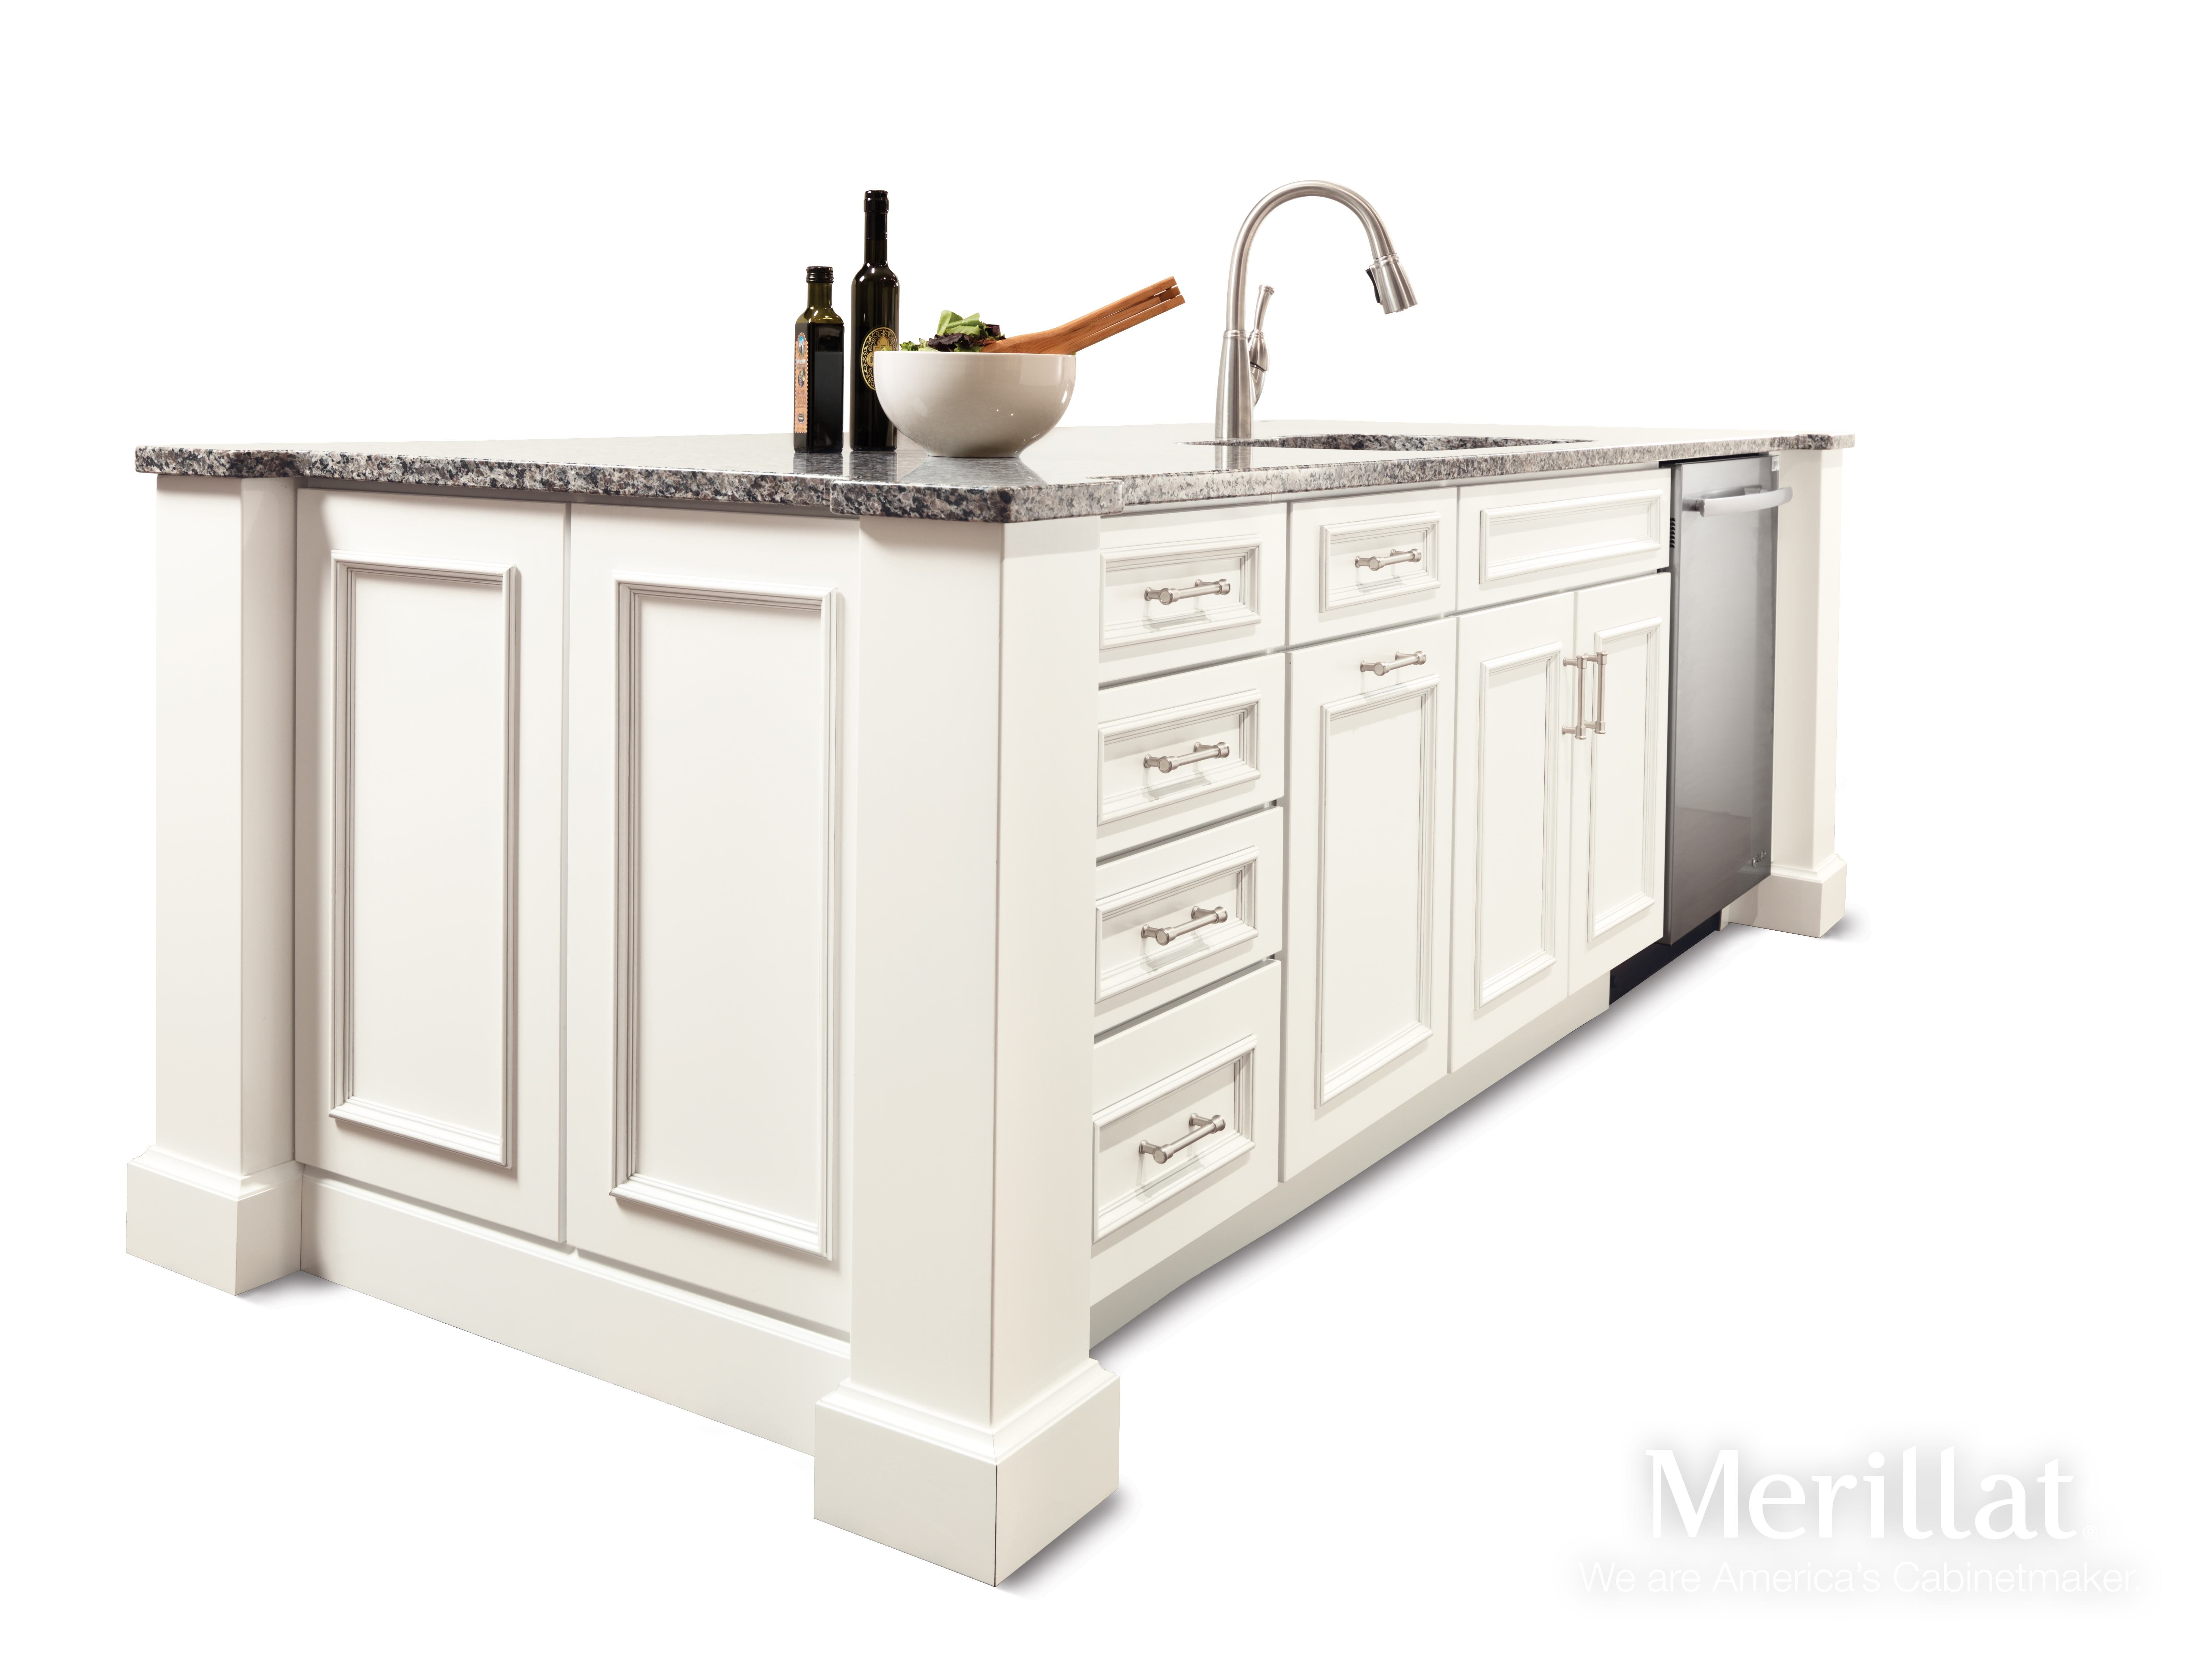 Merillat Classic Cannonsburg Maple Cotton with Tuscan Glaze